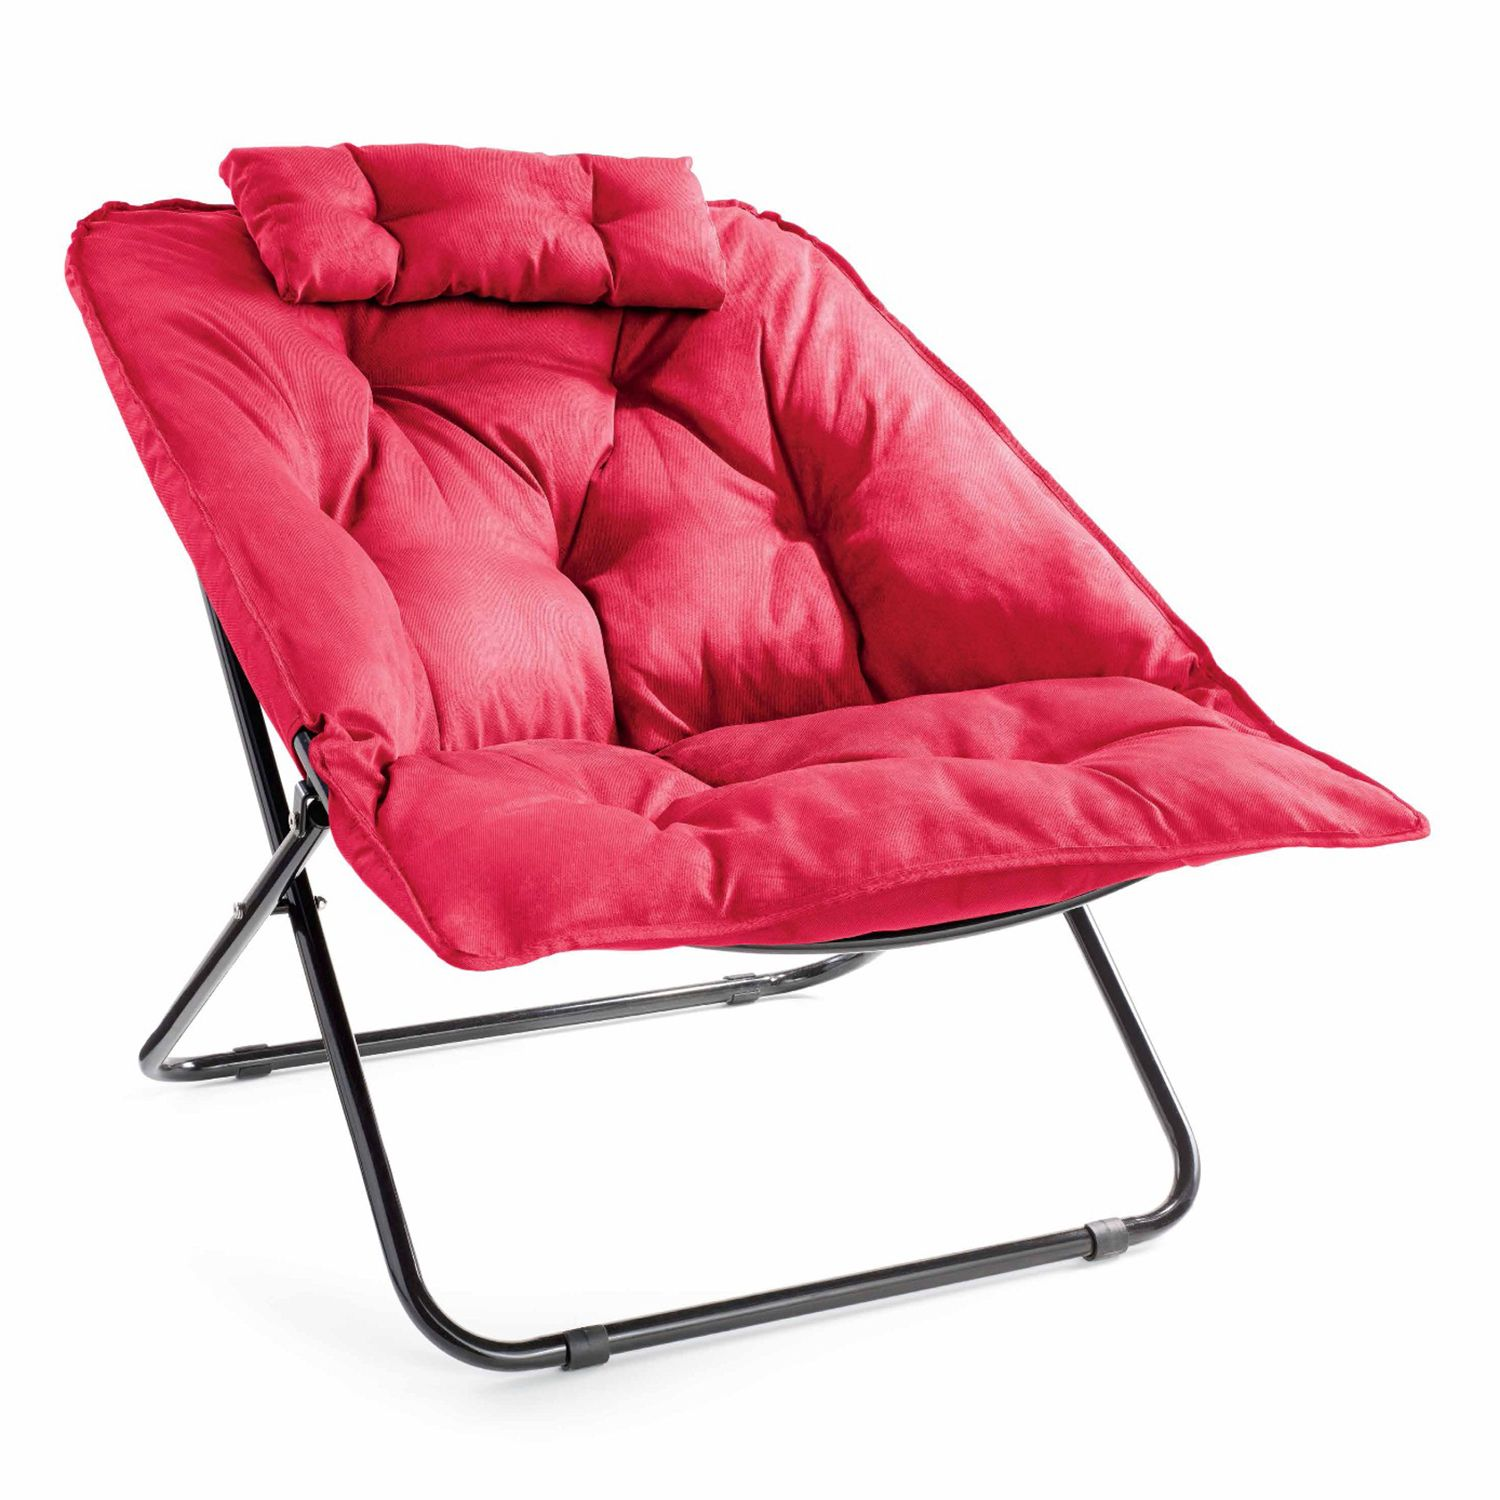 Simple By Design Memory Foam Lounge Chair